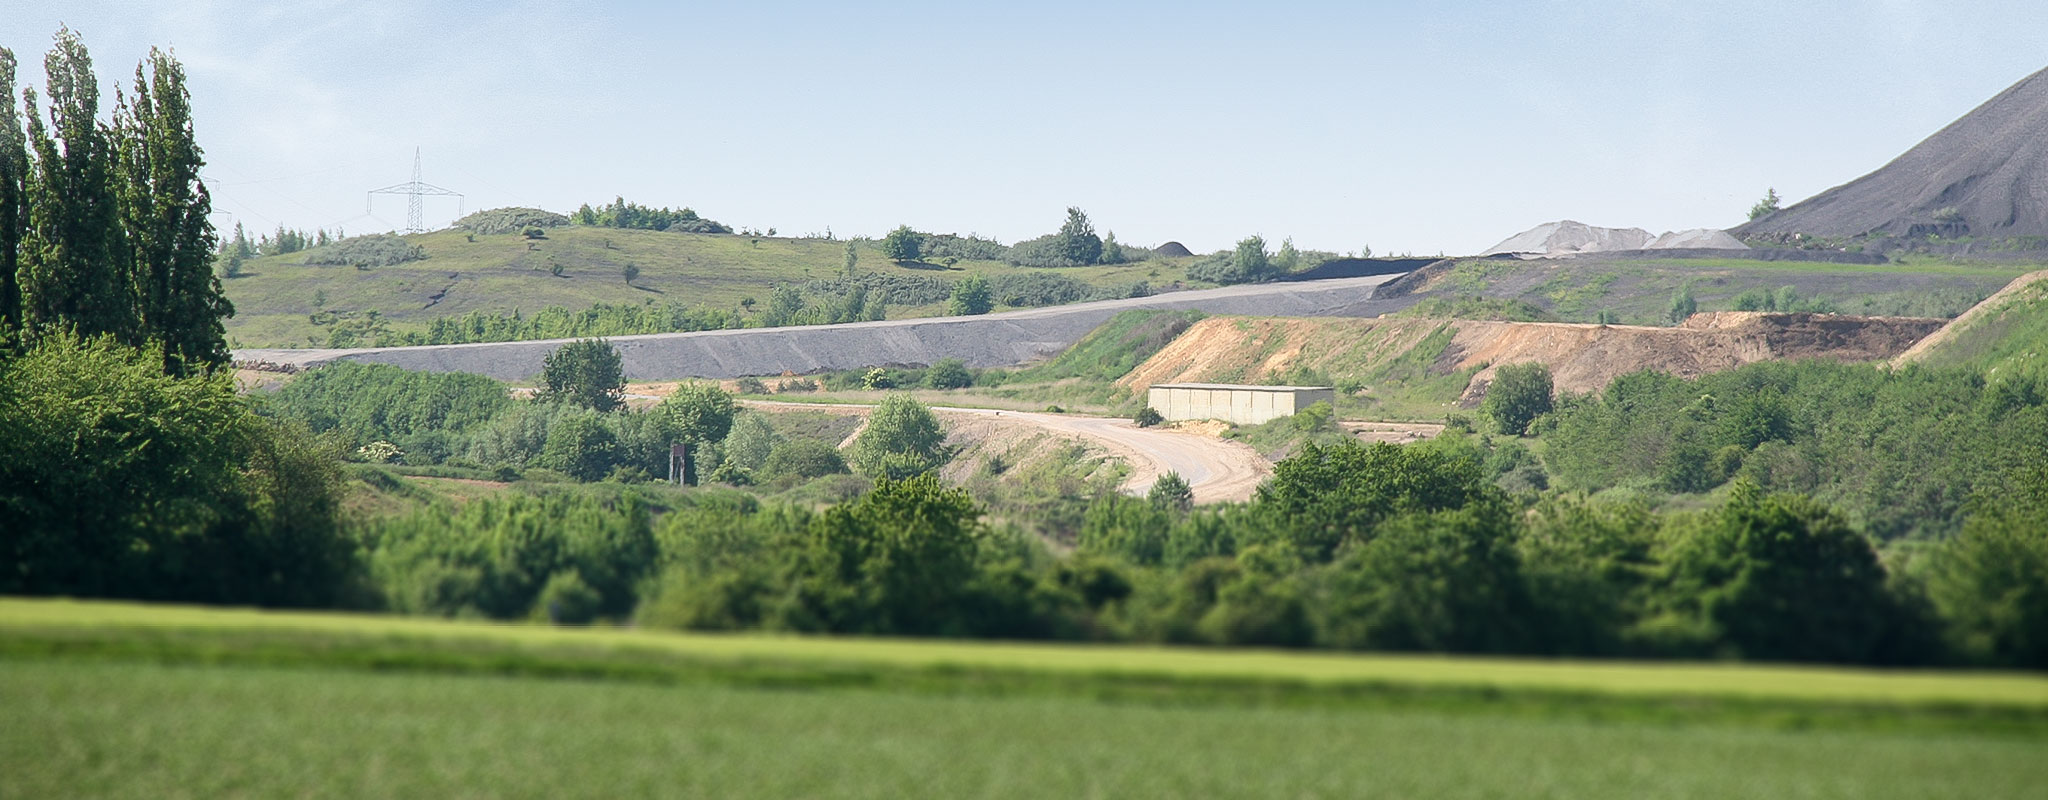 Creating landfill volume by new landfill on old